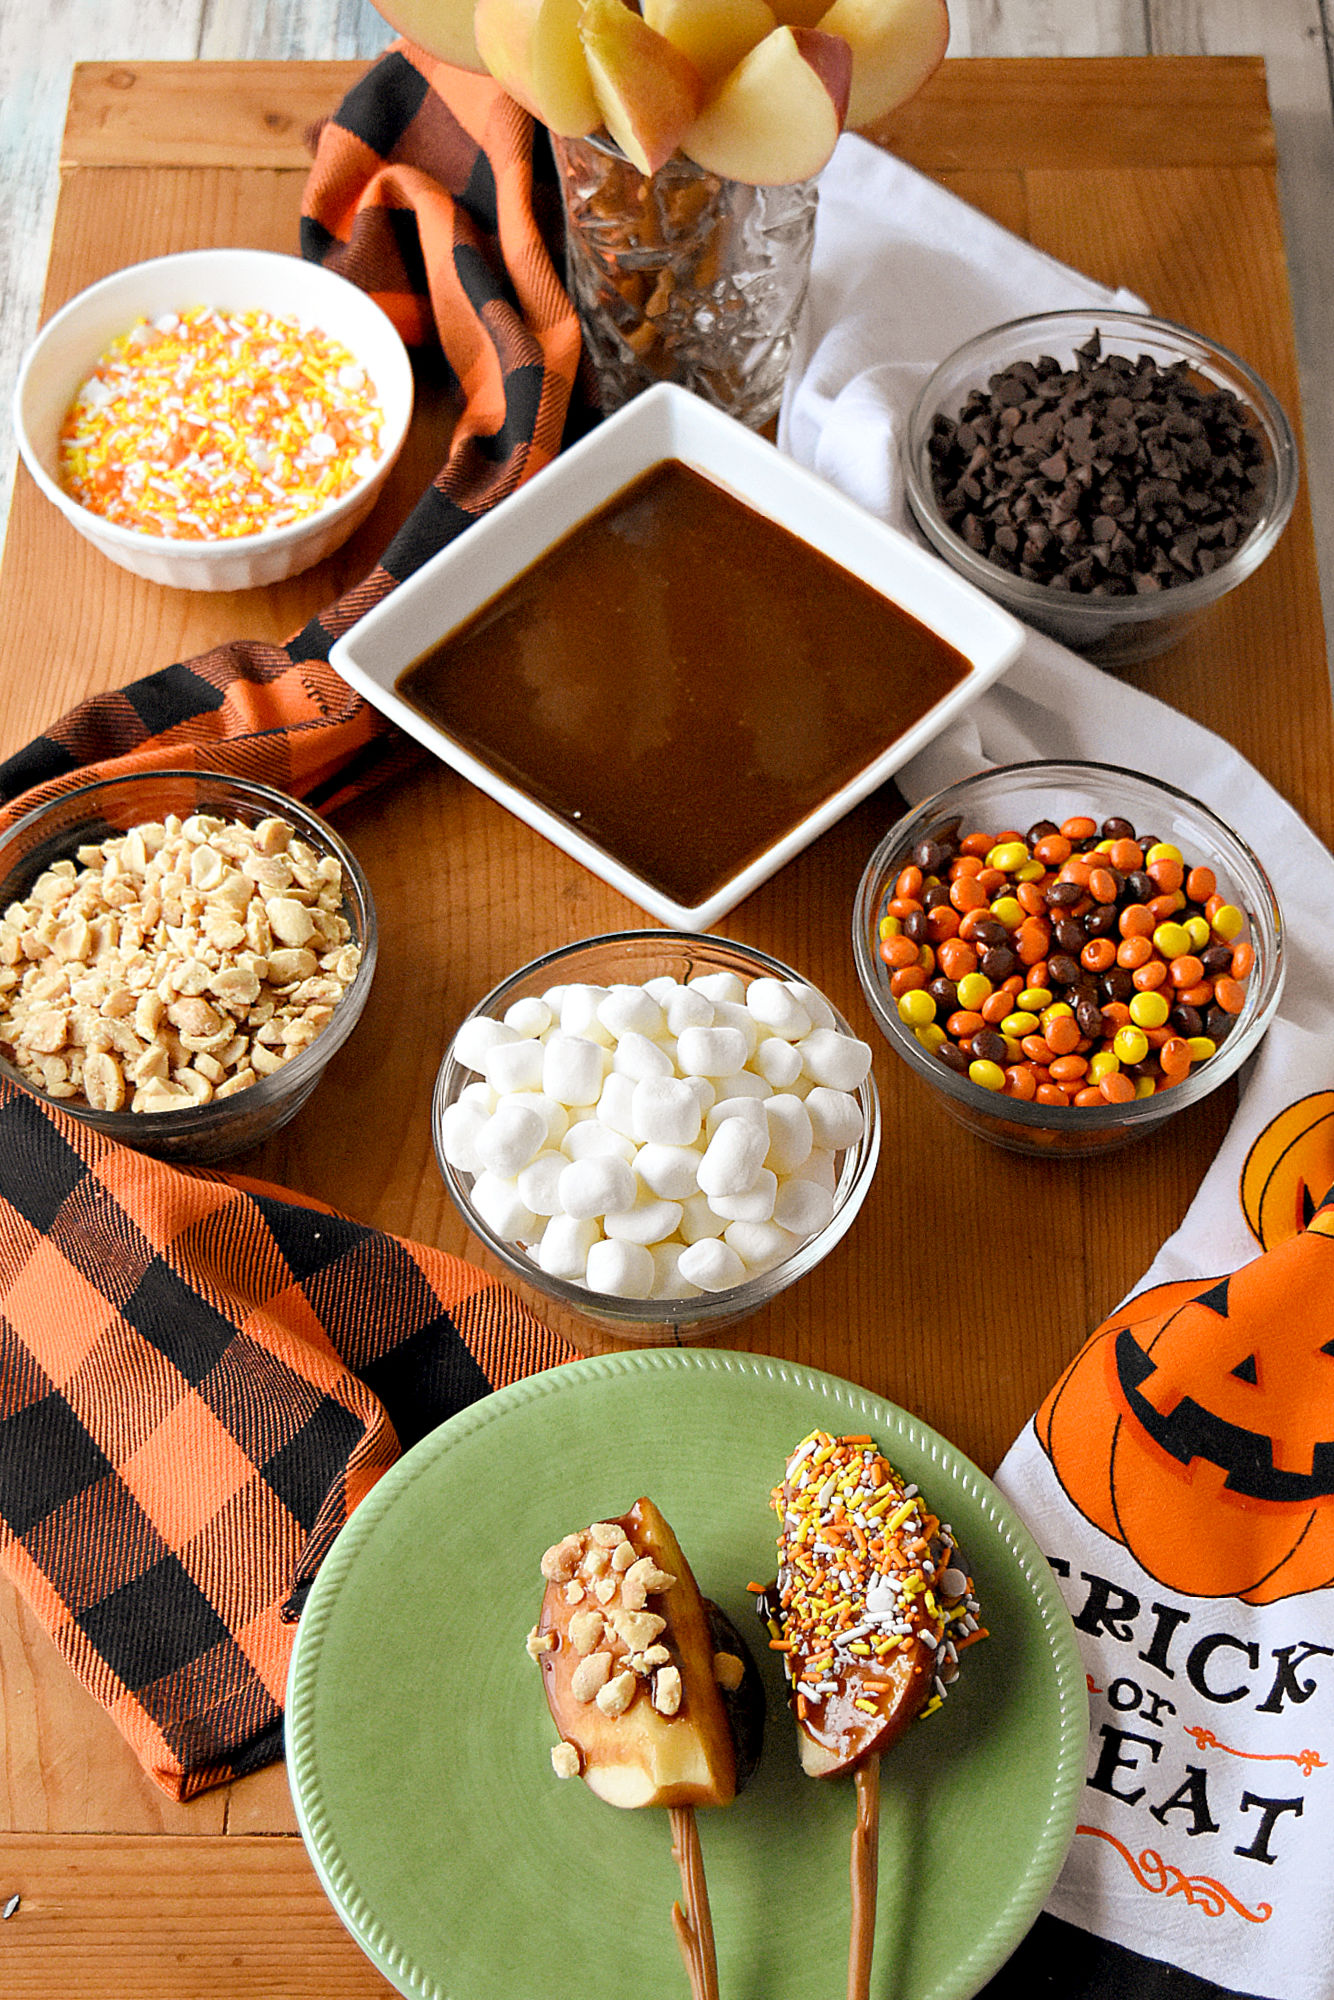 Caramel Apple Board is packed with fun toppings and a delicious peanut butter caramel. Made with brown sugar, the caramel sauce is simple to make and tastes delicious. #HalloweenTreatsWeek